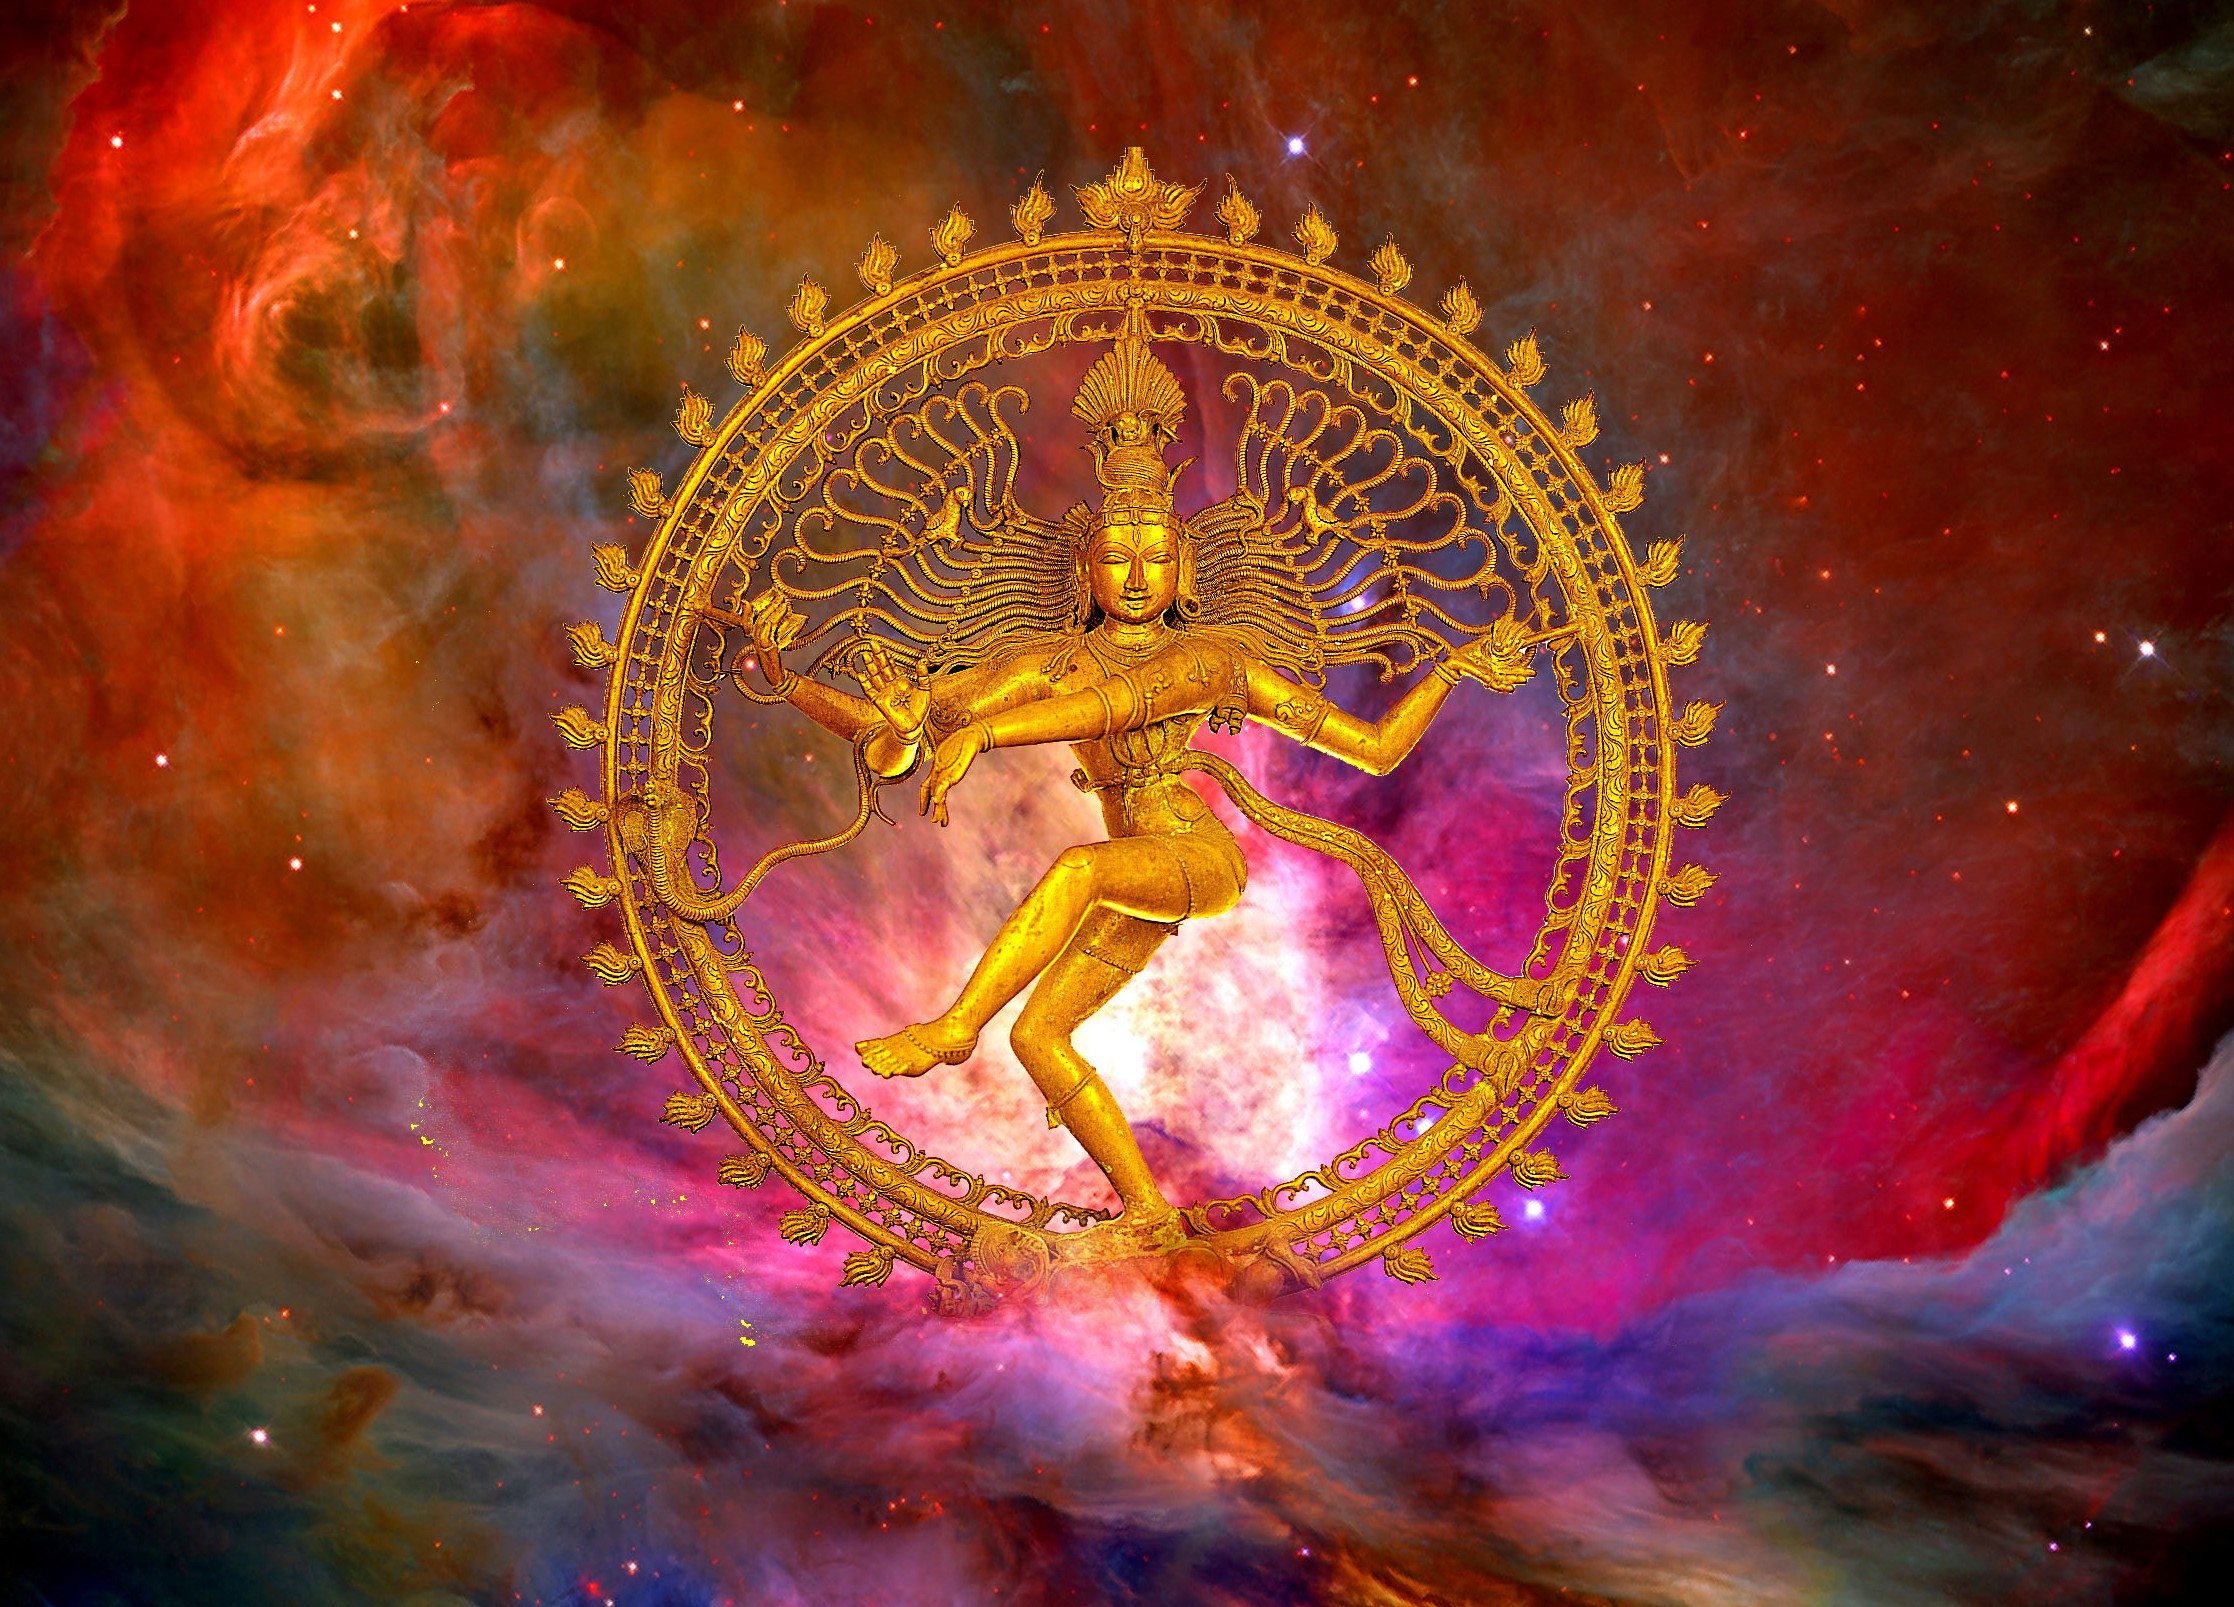 nataraja with orion nebula